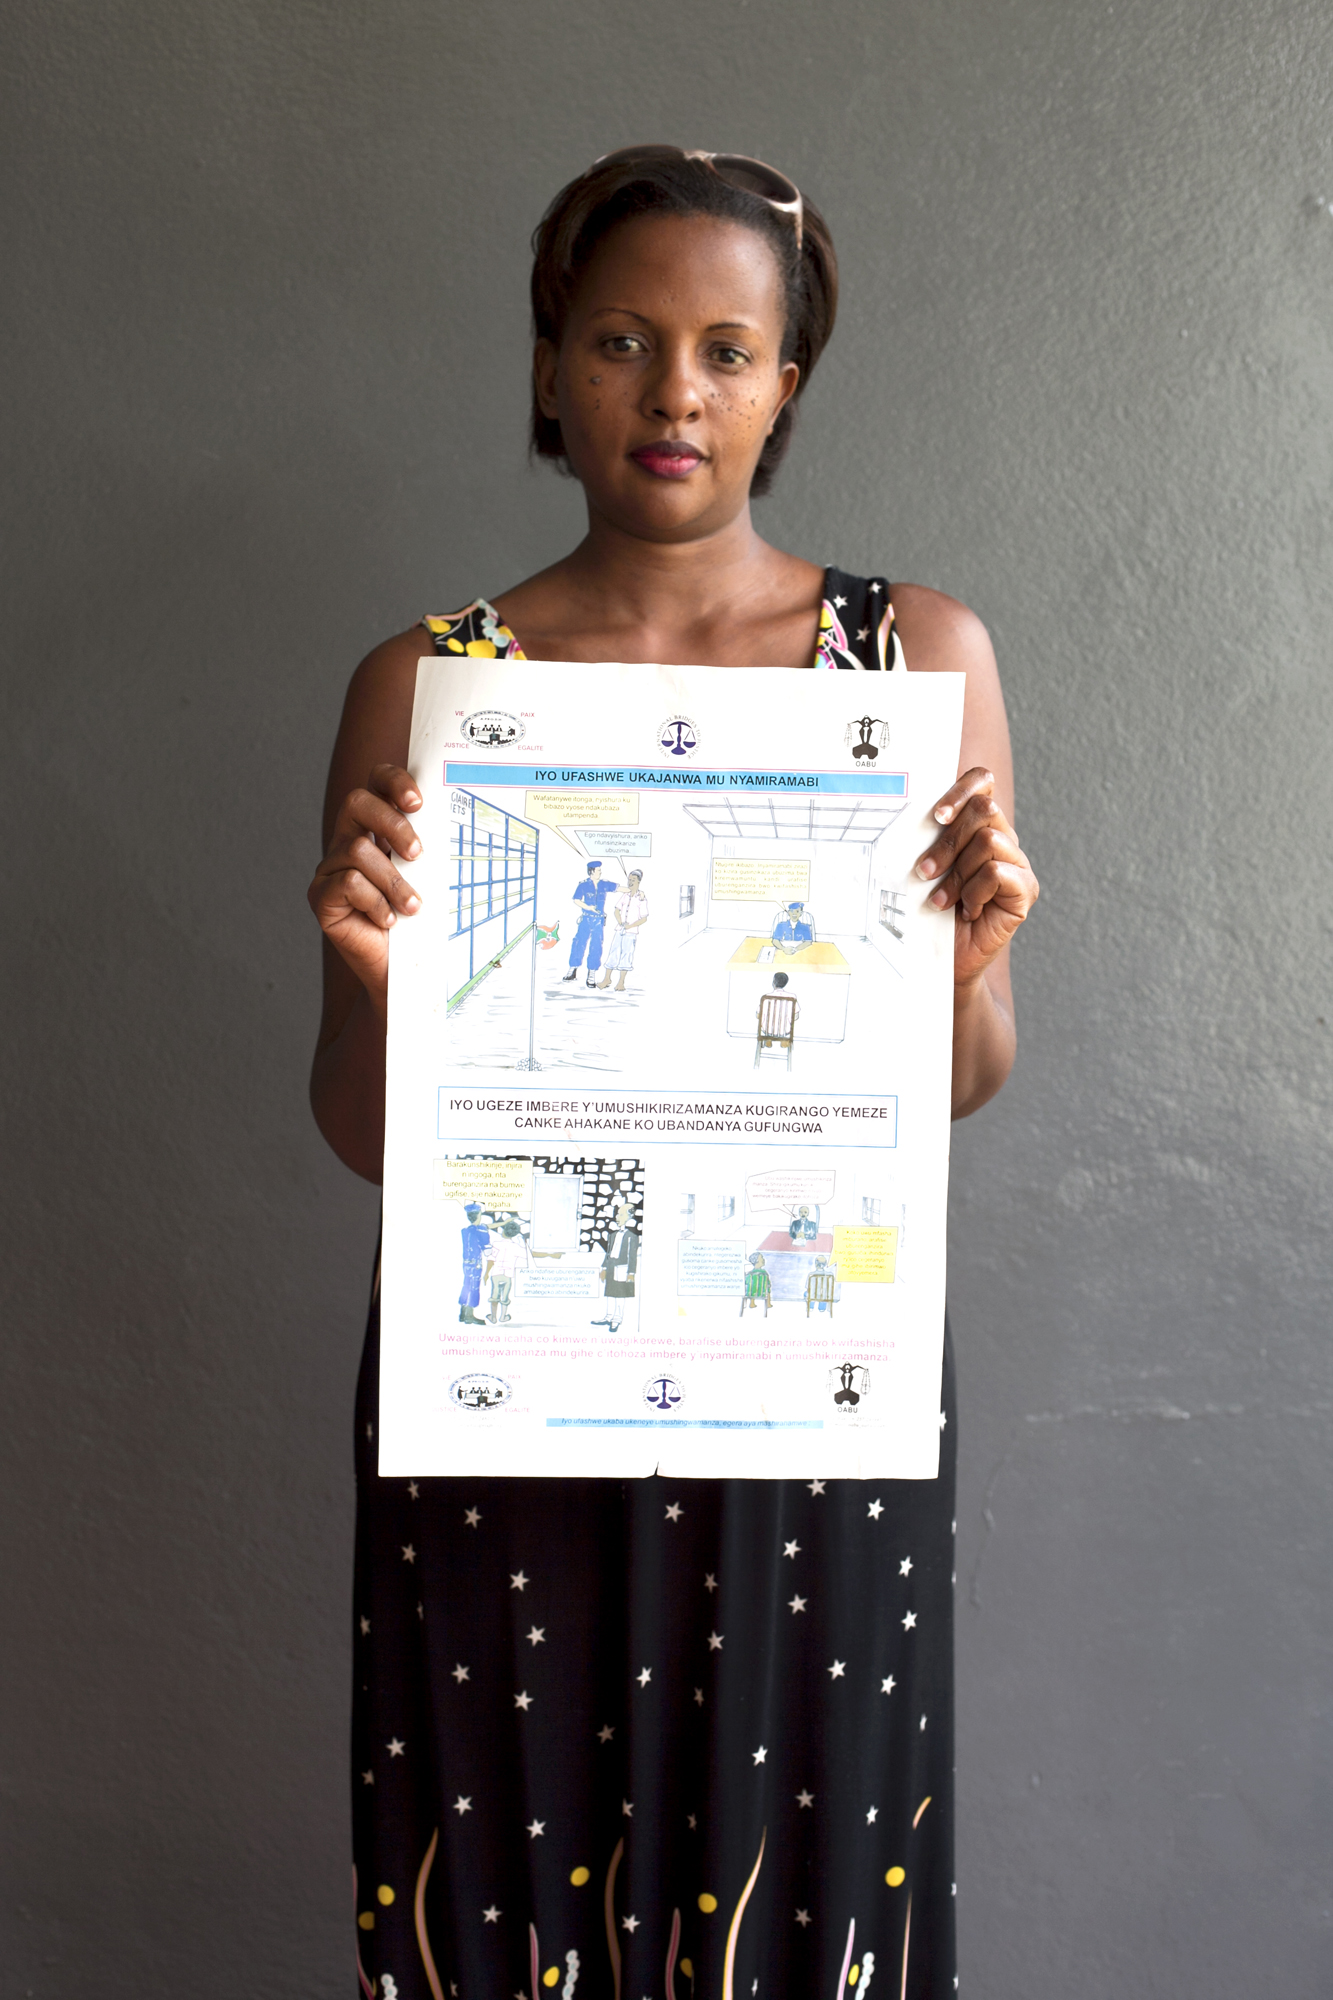 Selene showing a rights awareness poster prepared and distributed by IBJ's team in Bujumbura